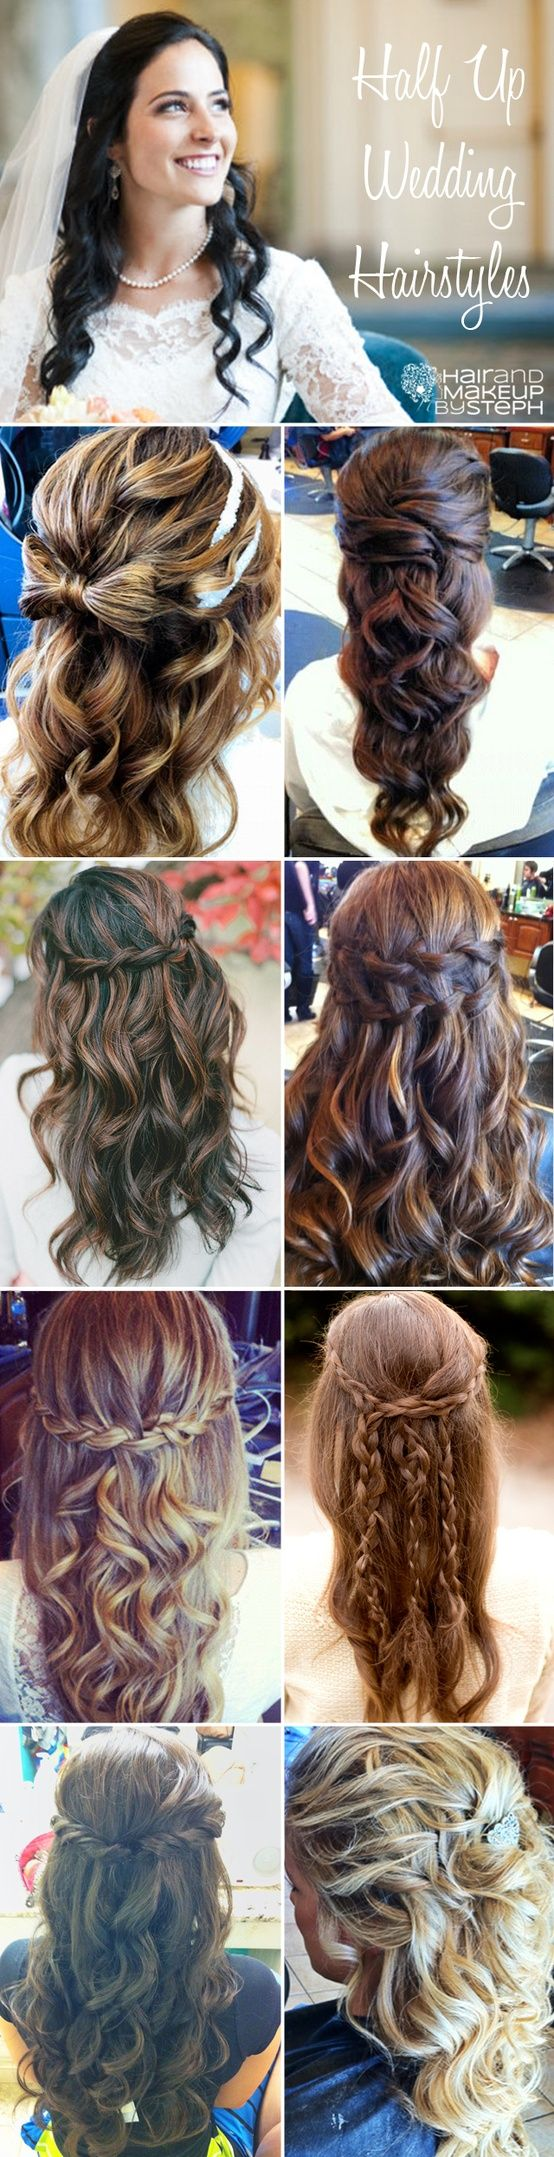 half up, long hair bridal hairstyles